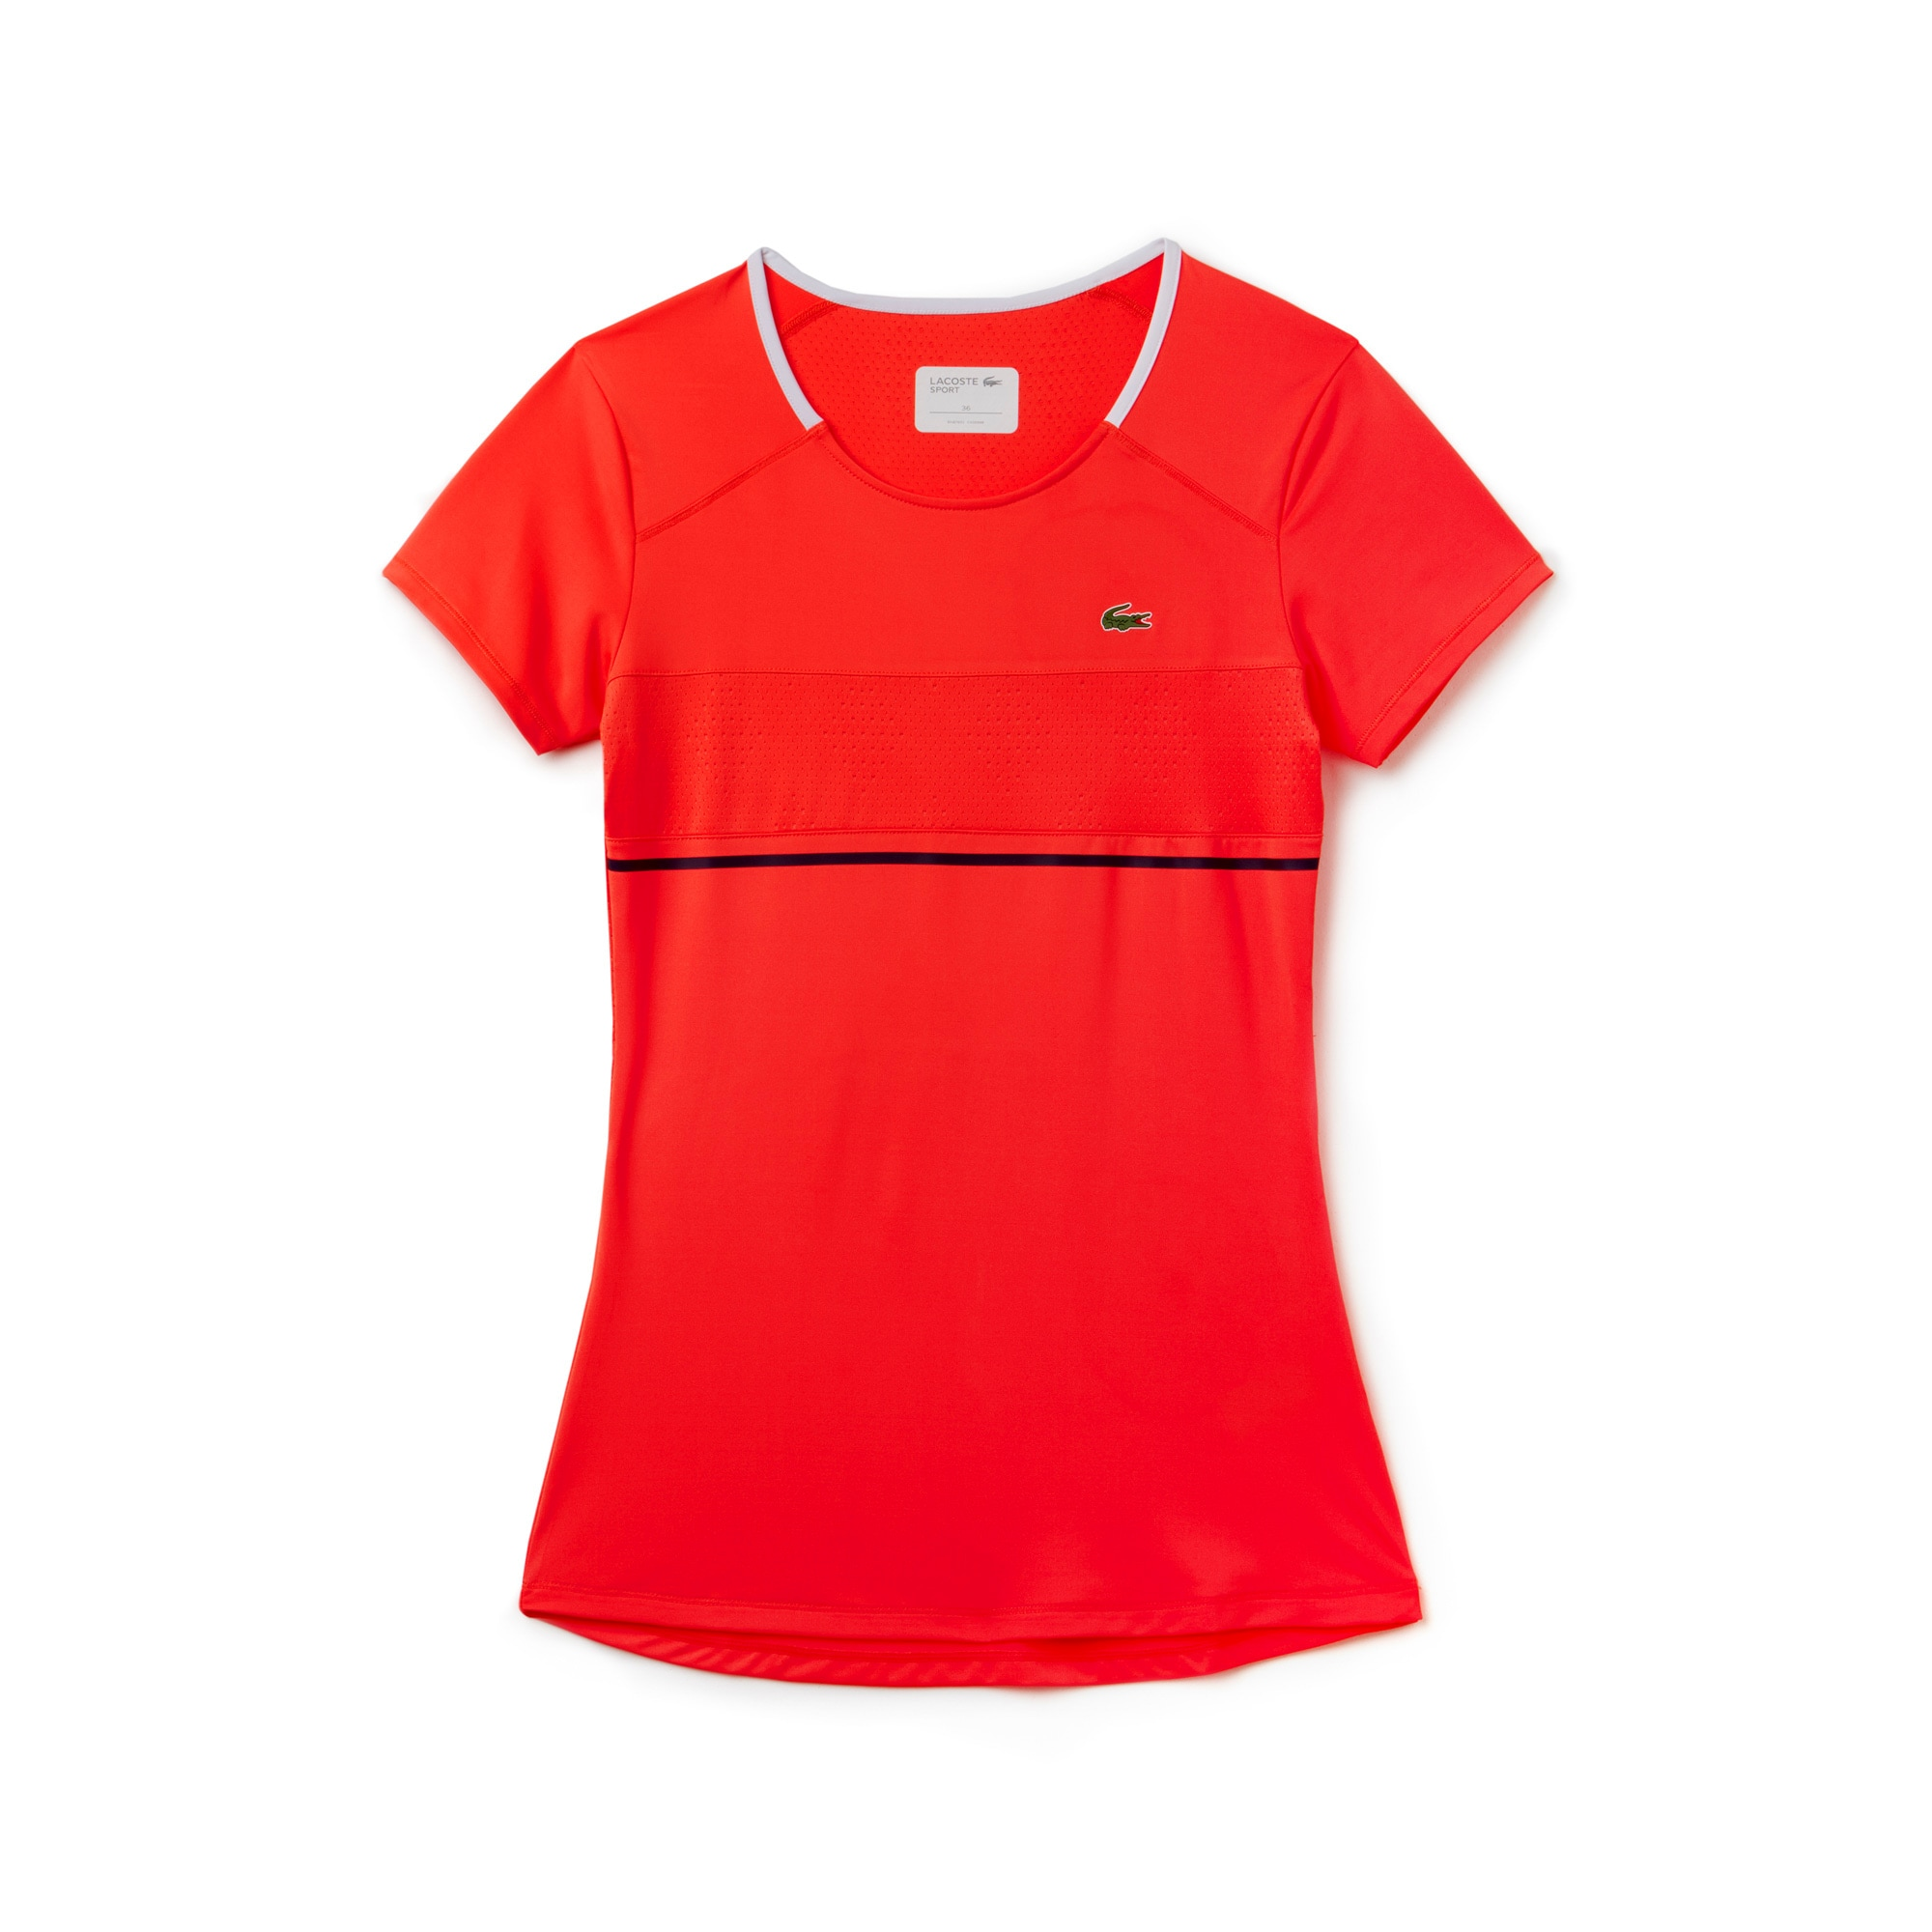 Women's SPORT Tennis T-shirt